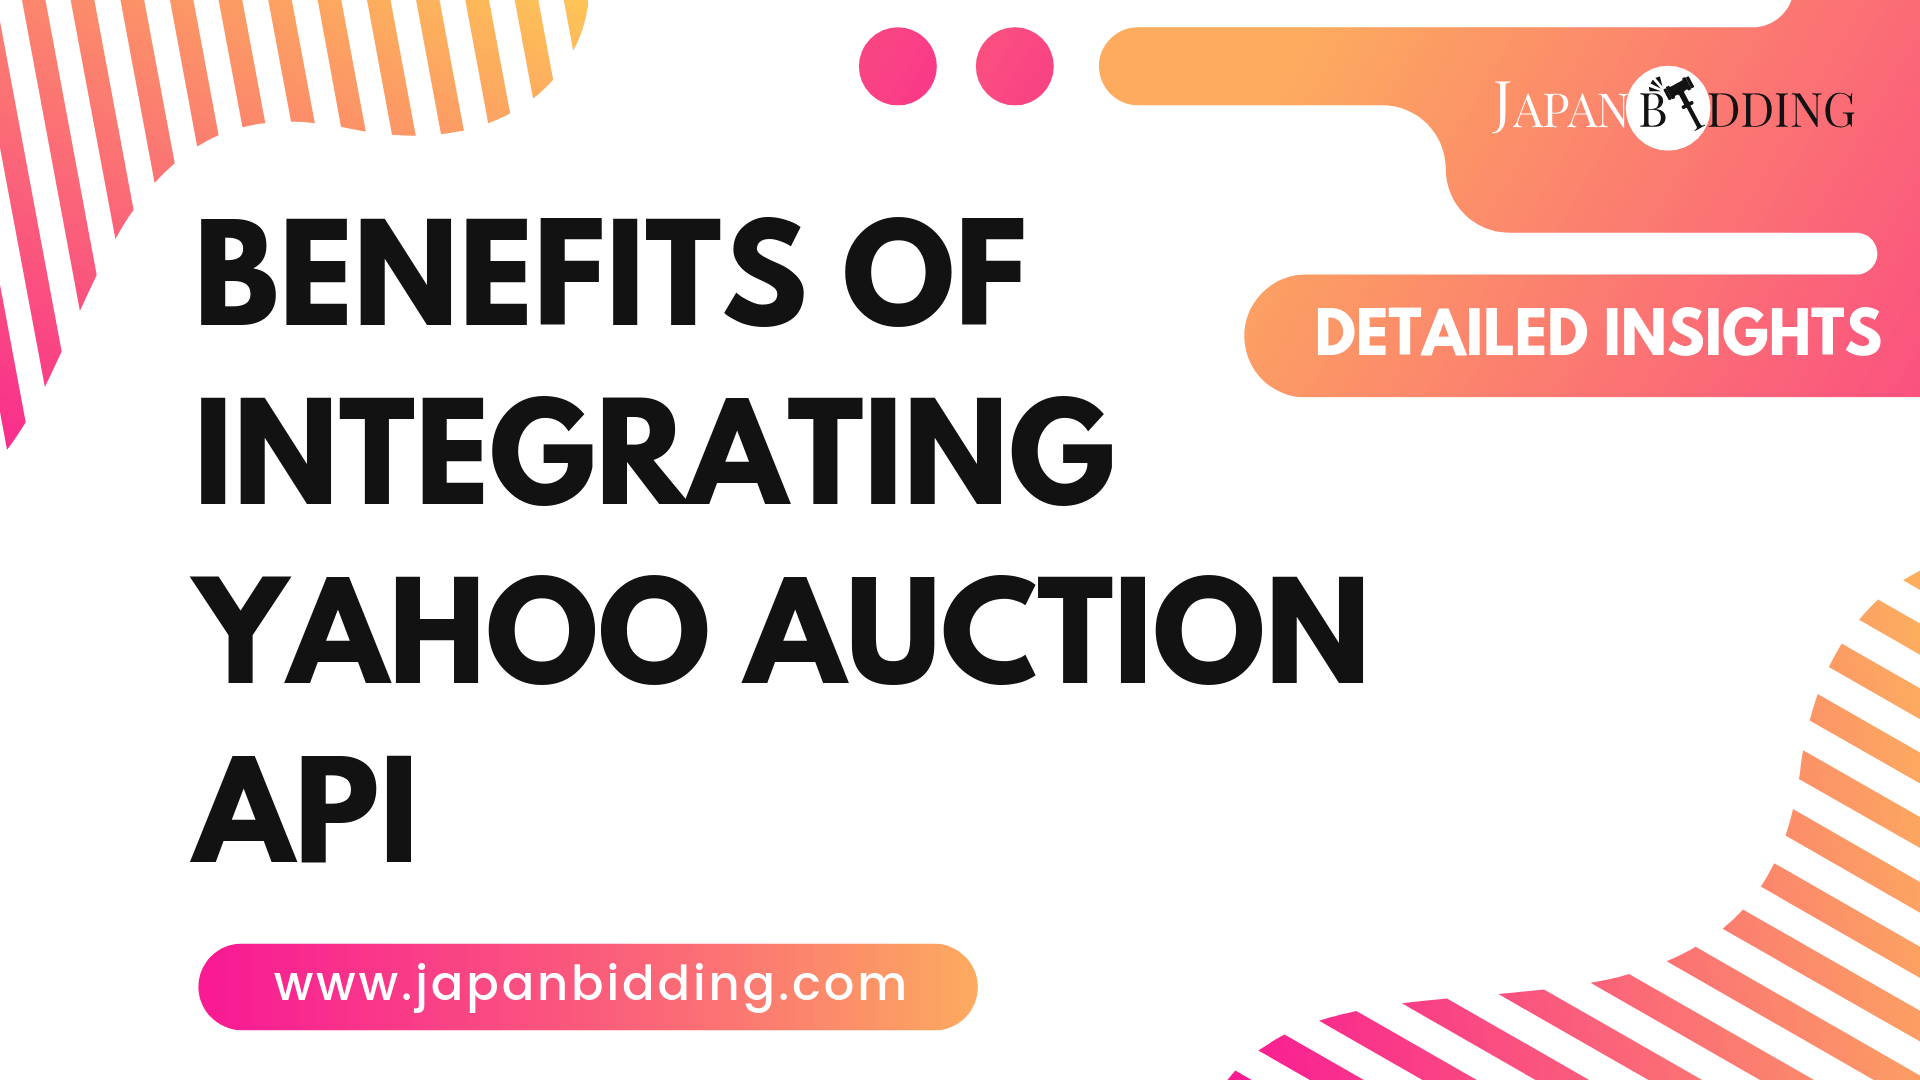 Benefits Of Integrating Yahoo Auction API On Your Online Auction Business